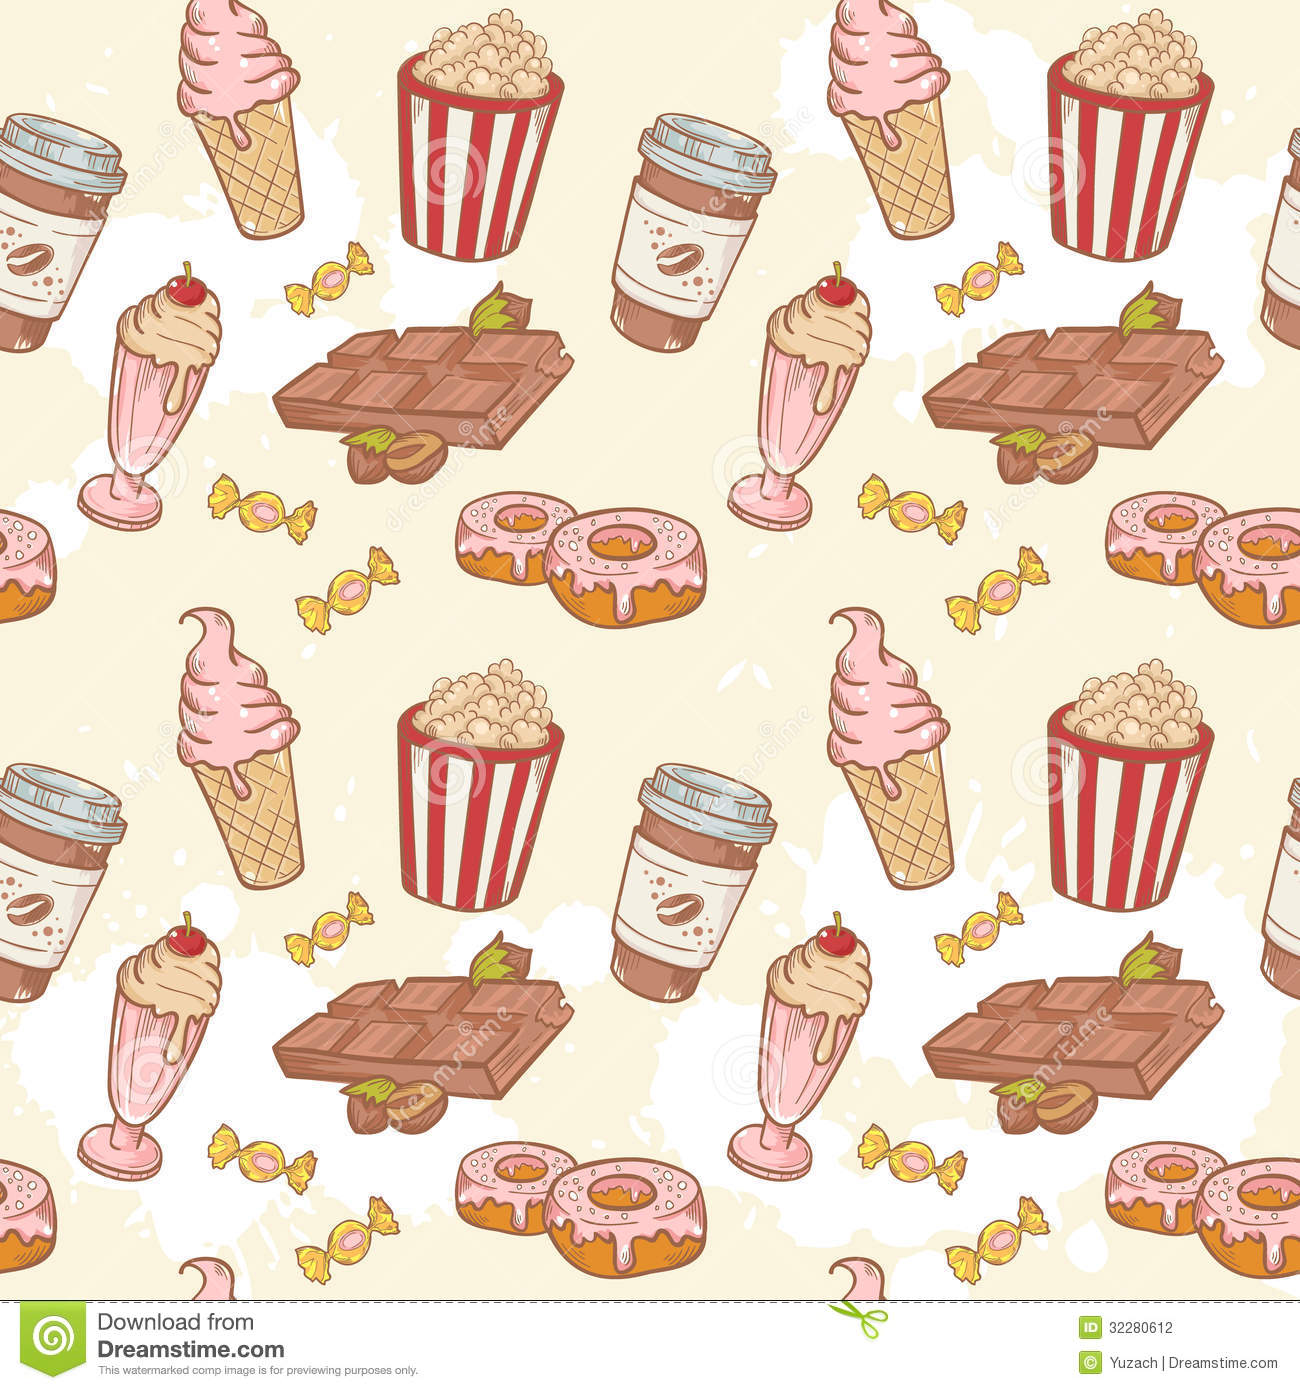 Seamless Pattern With Hand Drawn Watercolor Ice Cream: Fastfood Sweets Delicious Hand Drawn Vector Seamle Stock